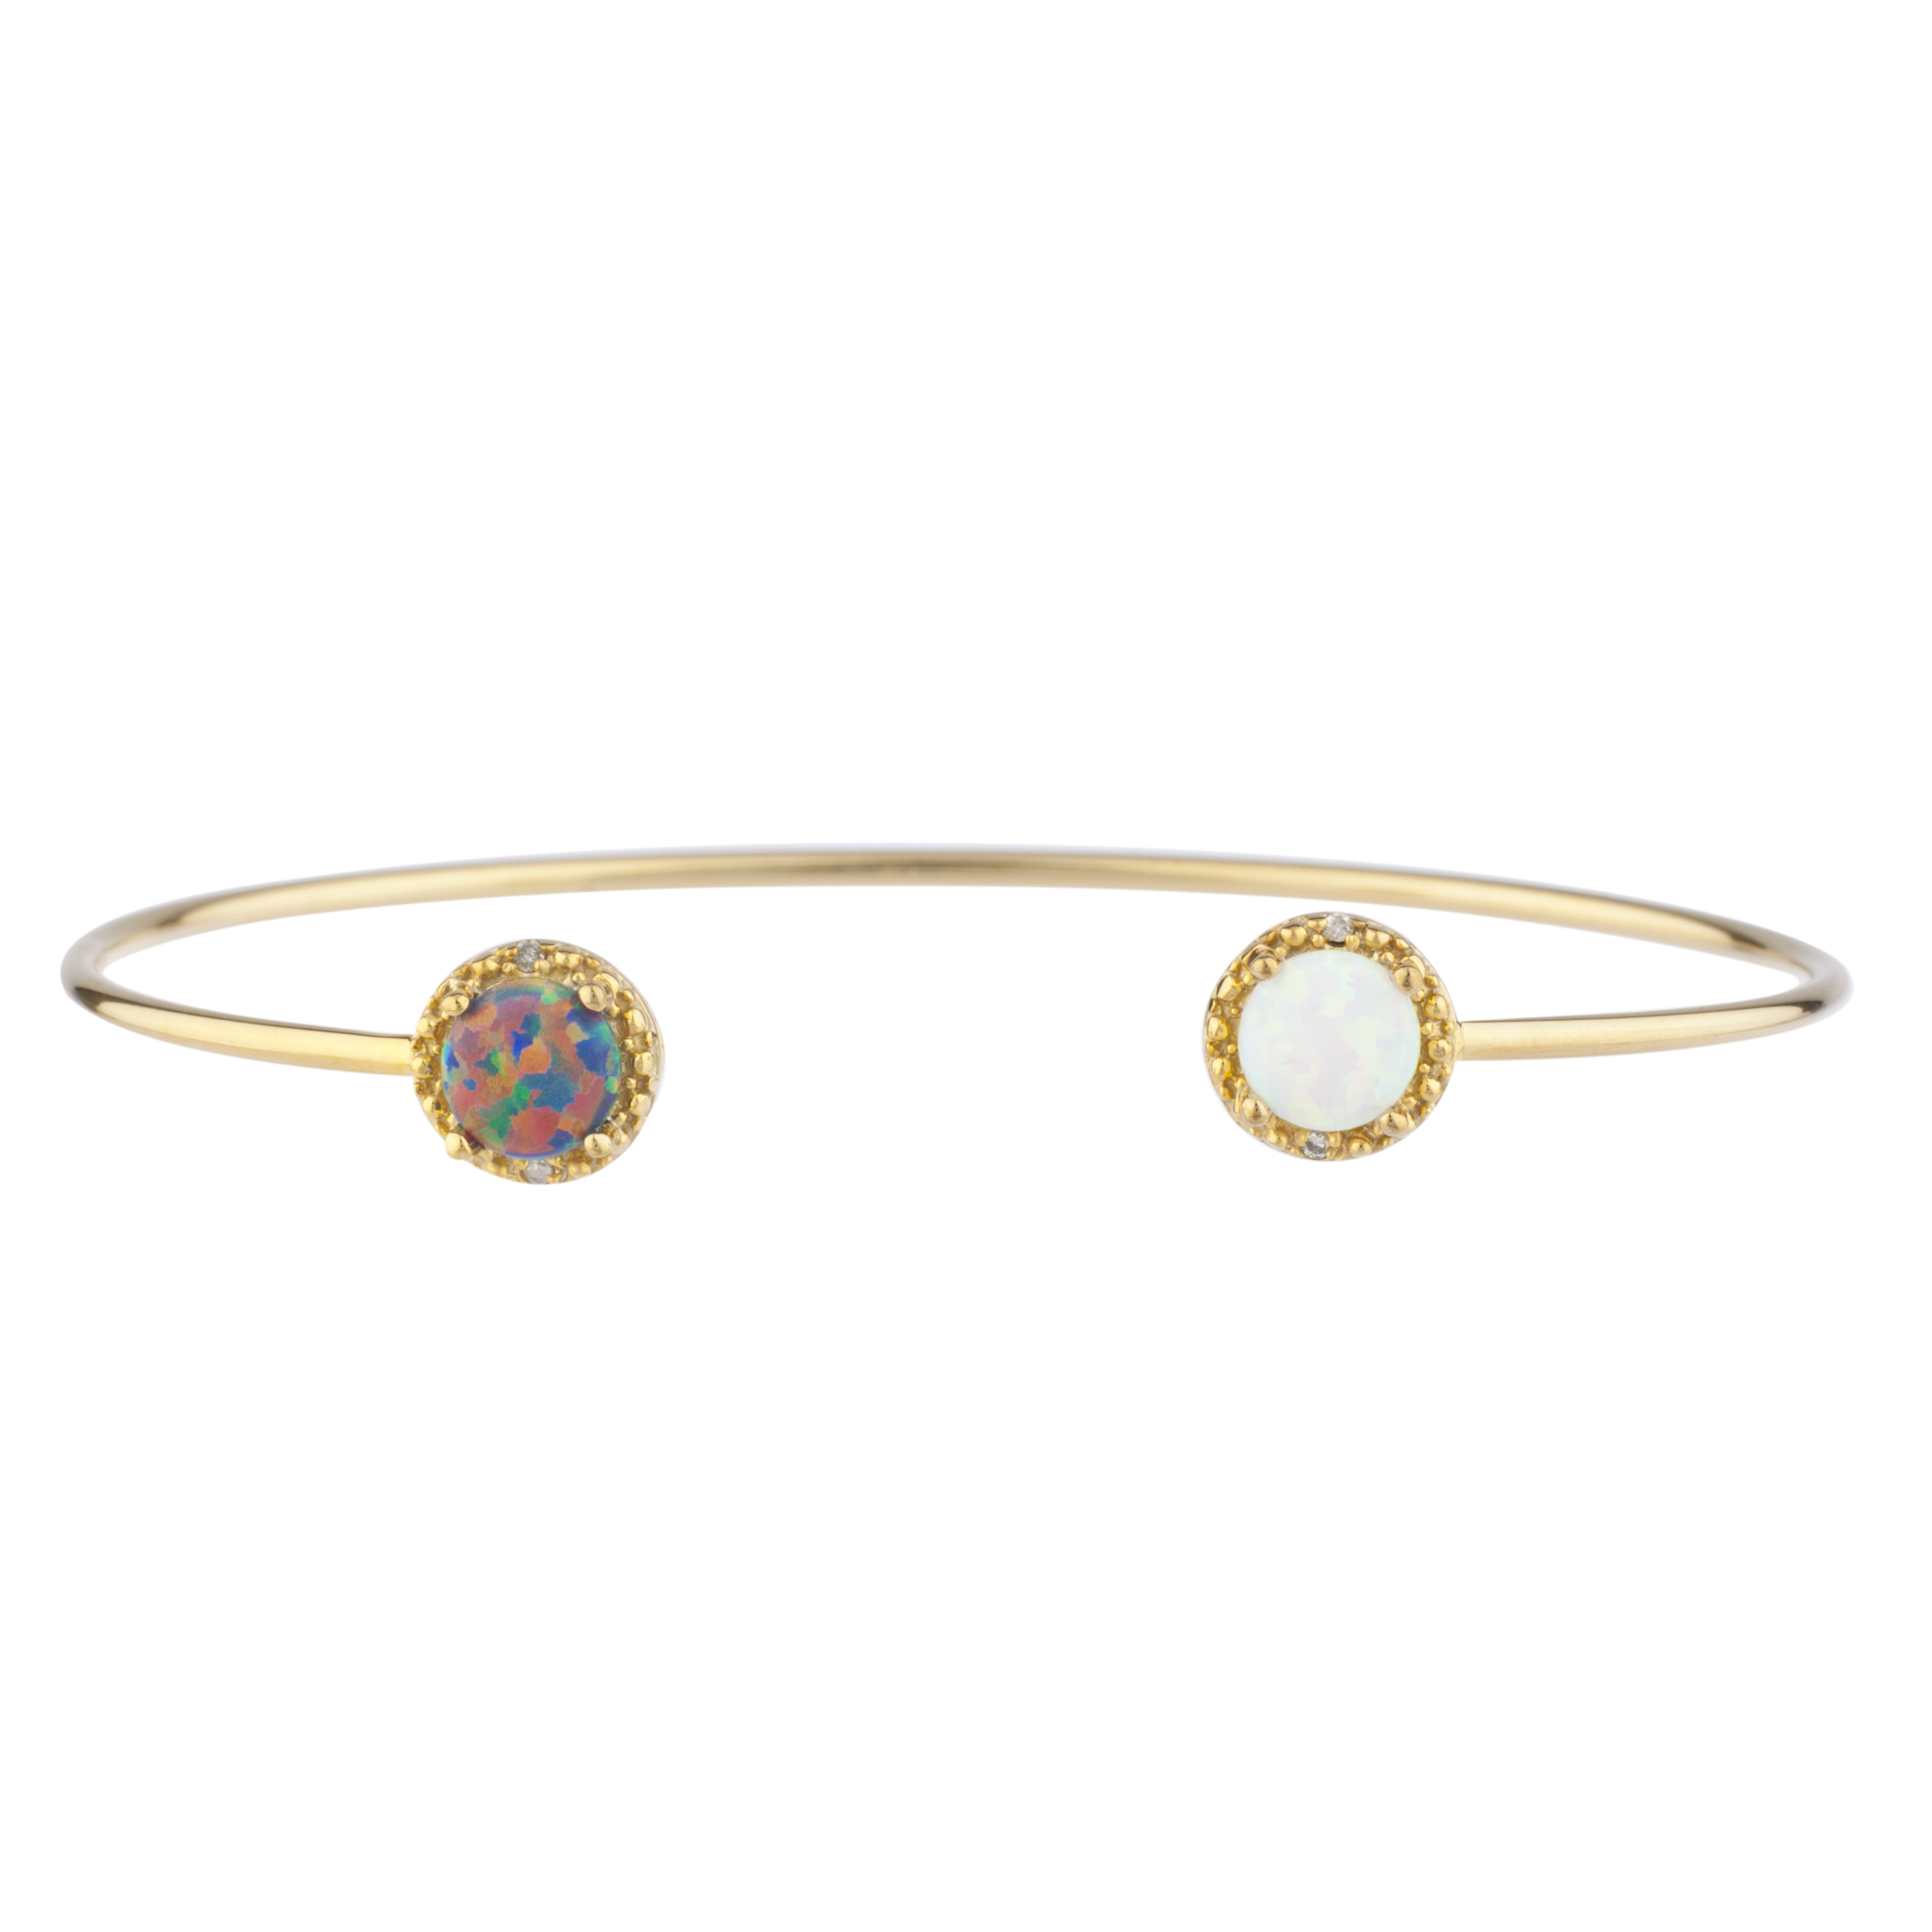 Black Opal & White Opal Diamond Bangle Round Bracelet 14Kt Yellow Gold Plated Over .925 Sterling Silver by Elizabeth Jewelry Inc